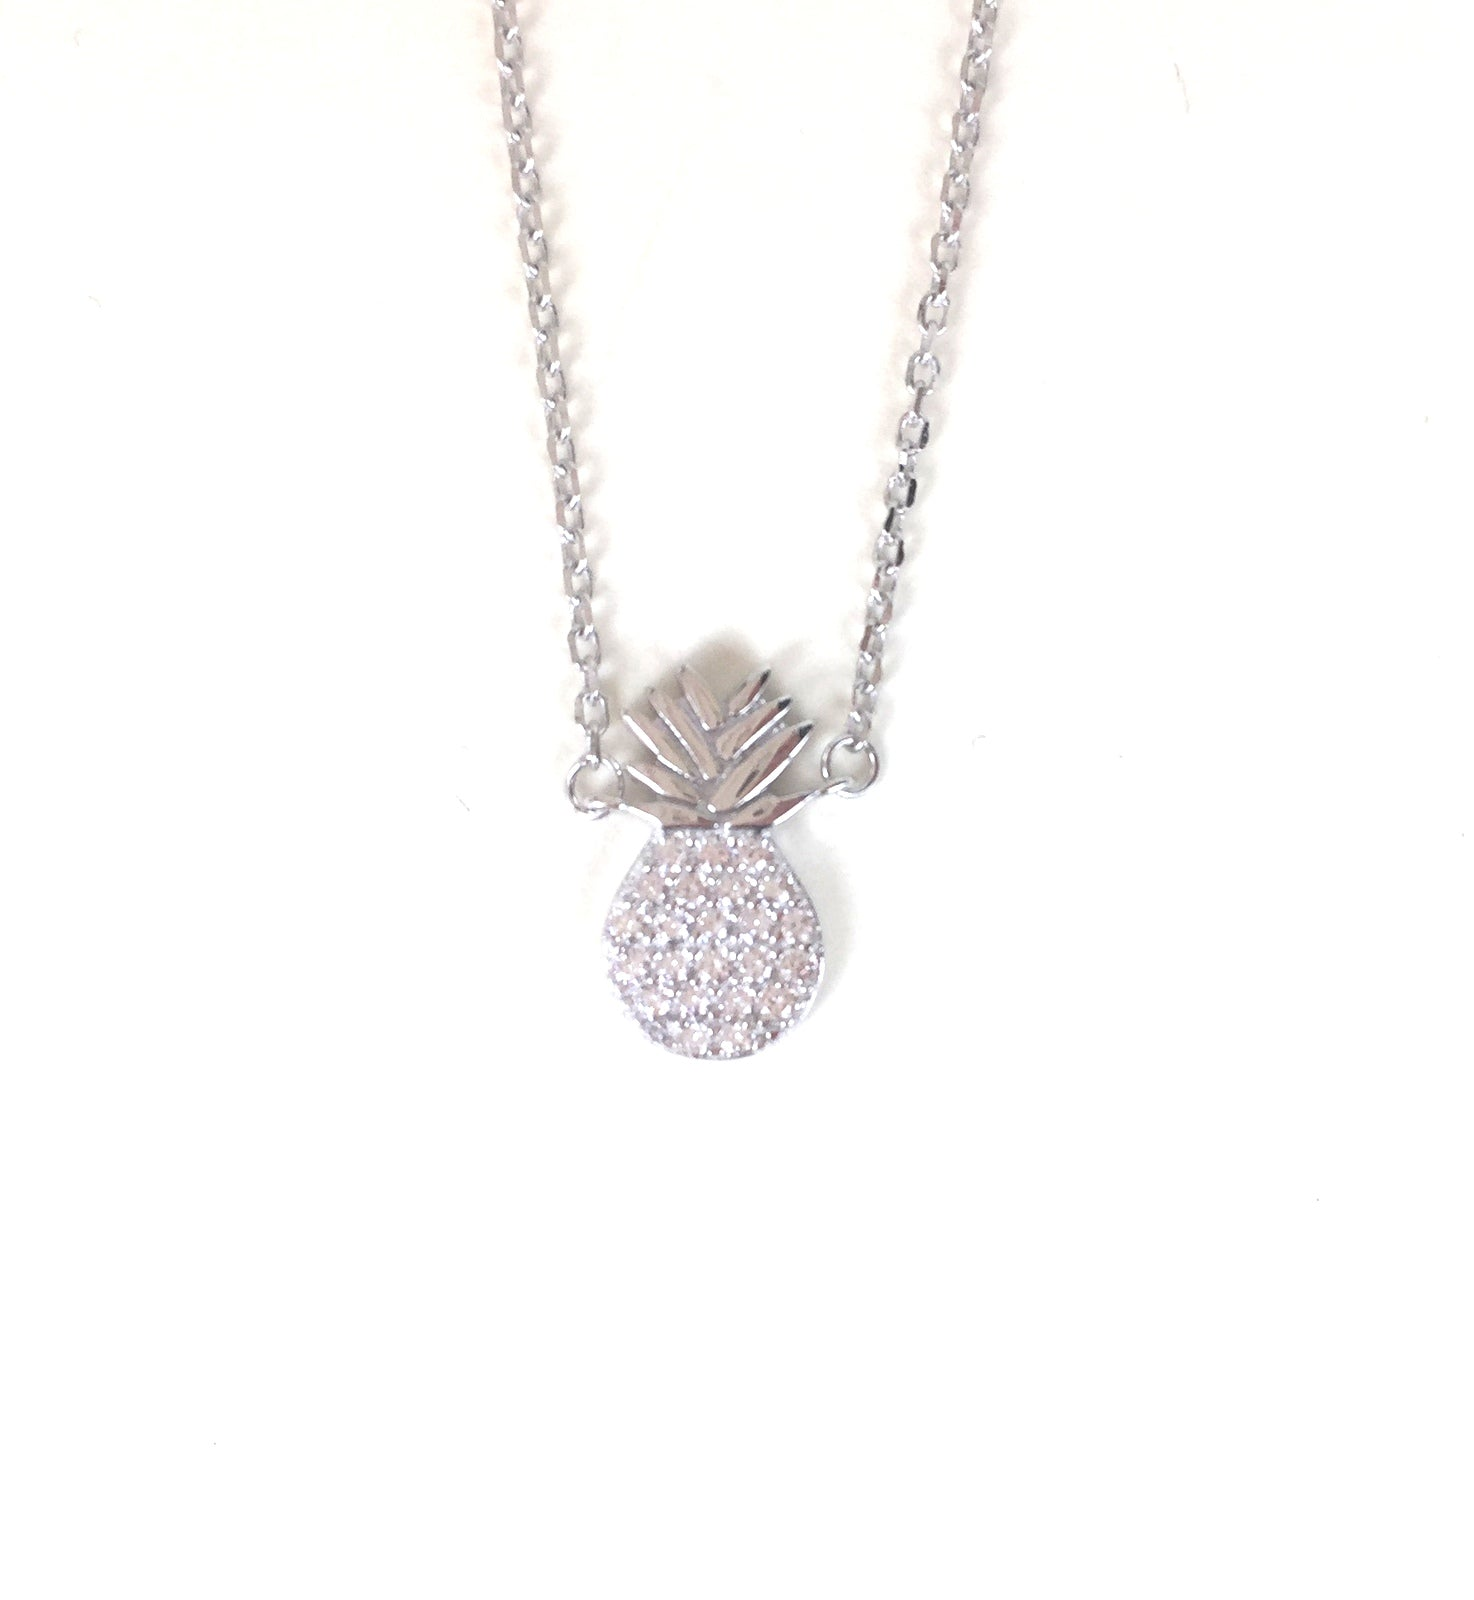 PINEAPPLE PAVE CZ STERLING SILVER NECKLACE